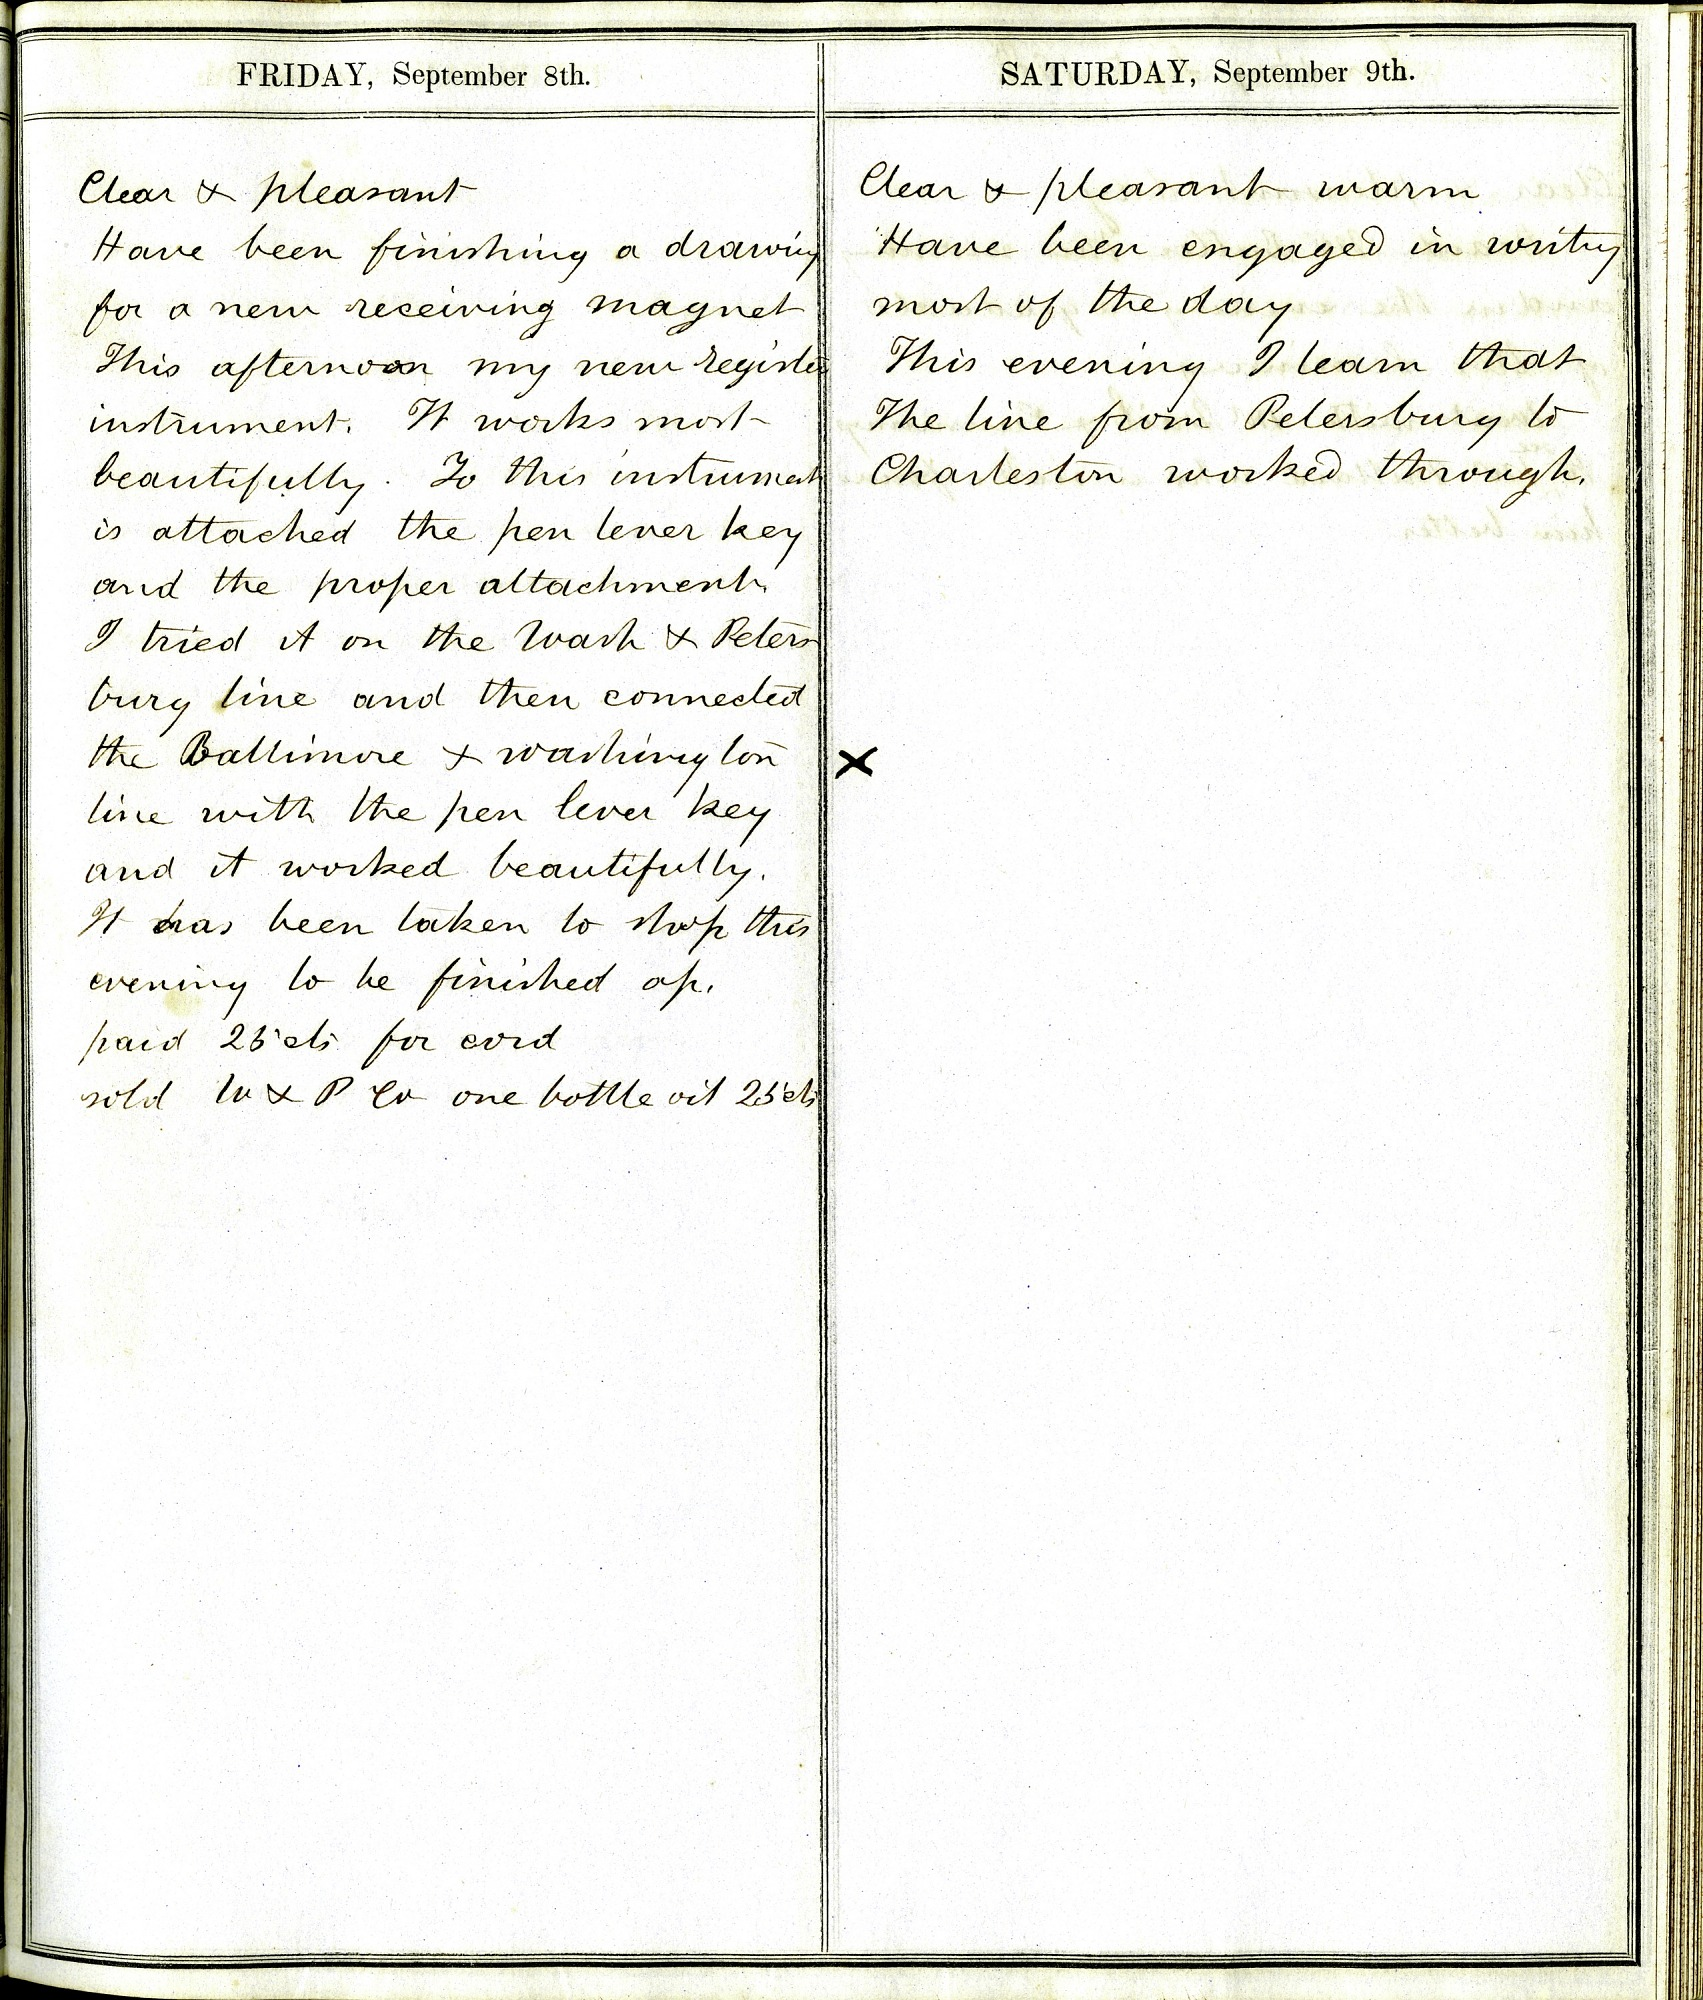 Diary of Alfred Vail, September 8 and 9, 1848 Entries